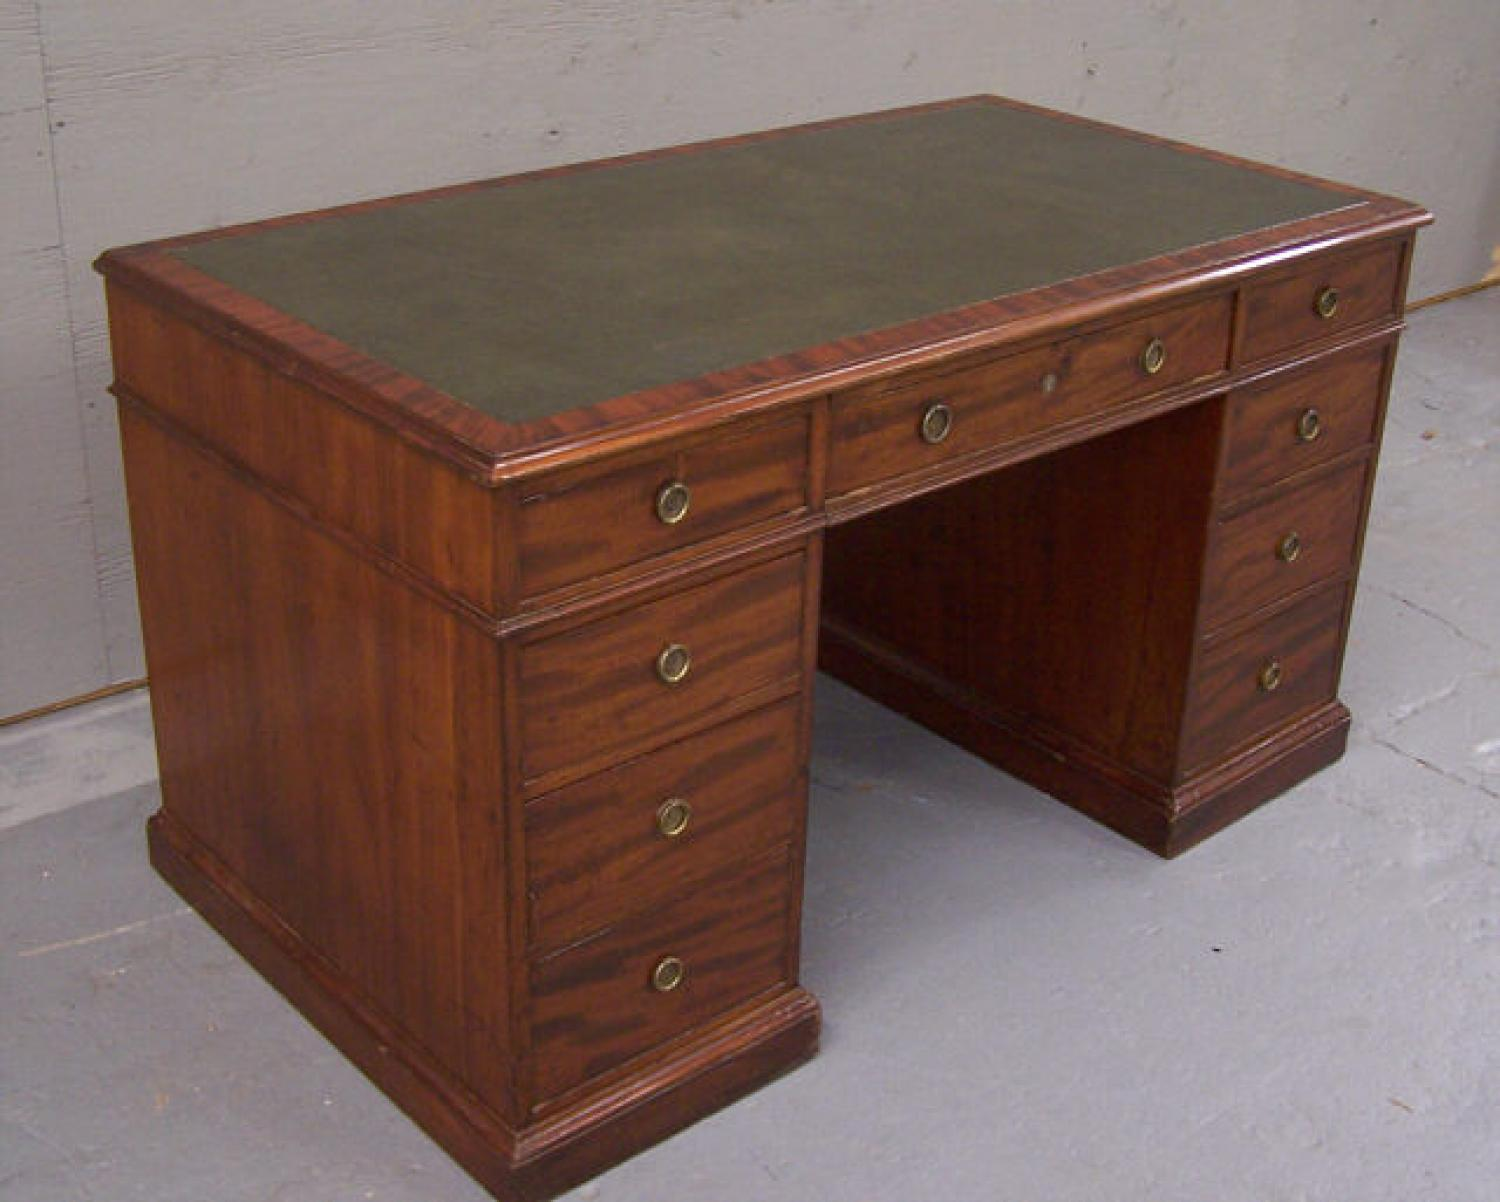 English Georgian flat top desk with leather top c1820 to 1840